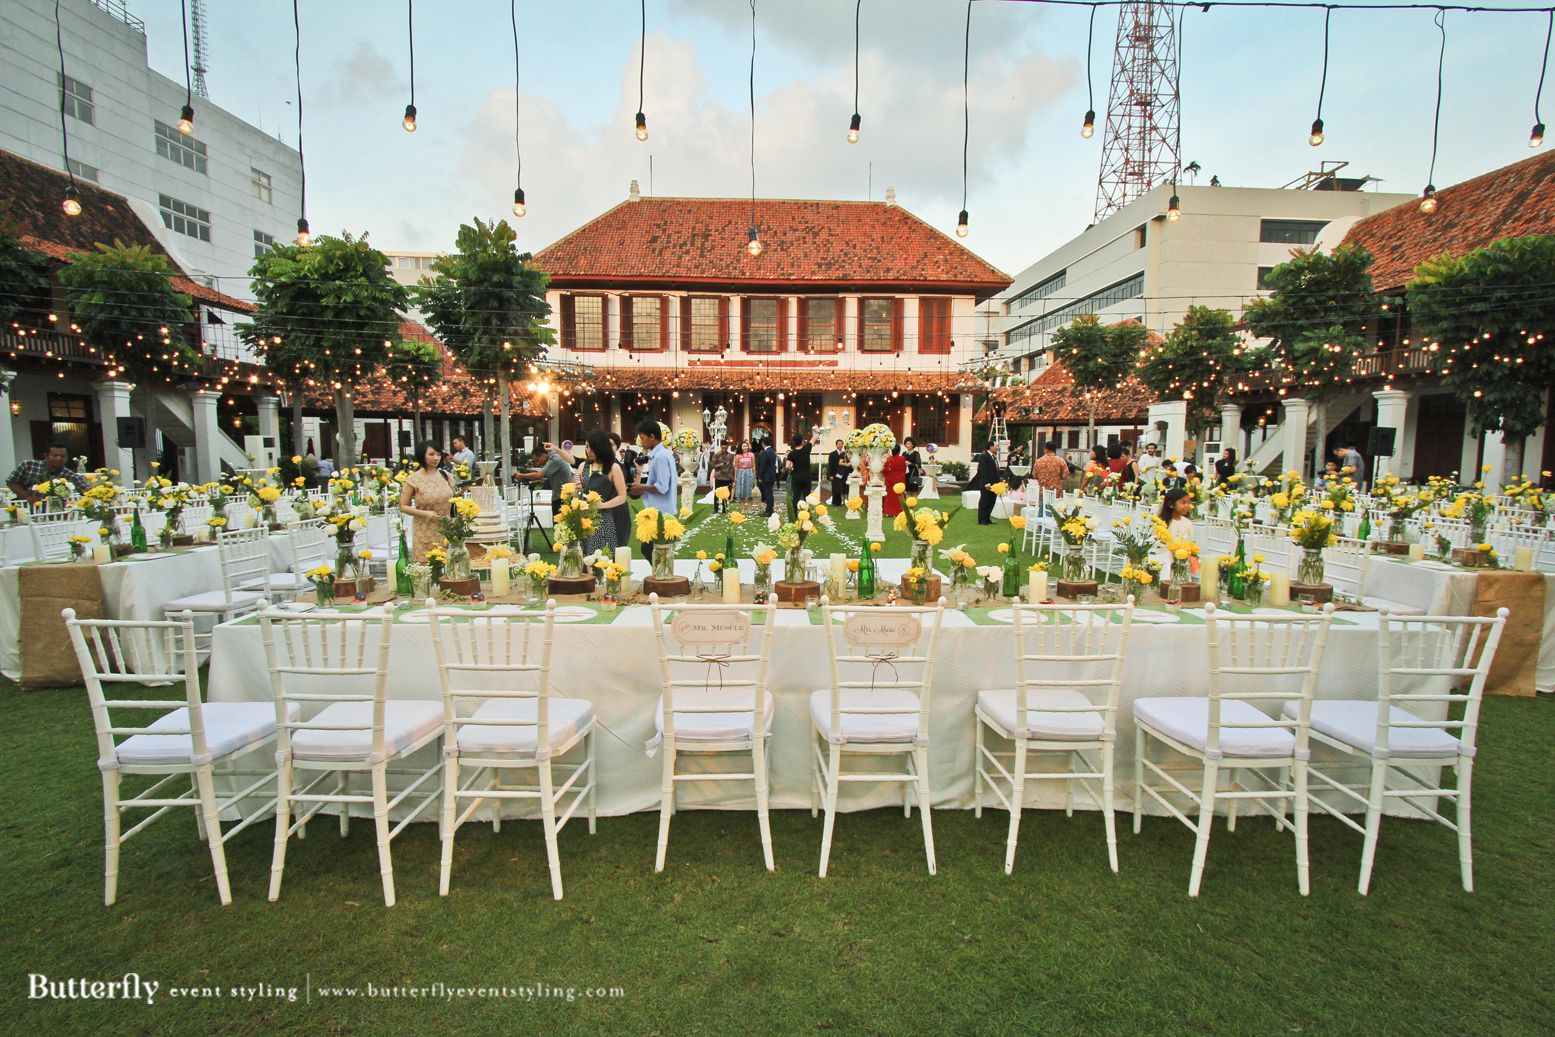 Top outdoor wedding venues in jakarta the bride dept gedung arsip top outdoor wedding venues in jakarta the bride dept gedung arsip outdoor wedding venue jakarta junglespirit Image collections